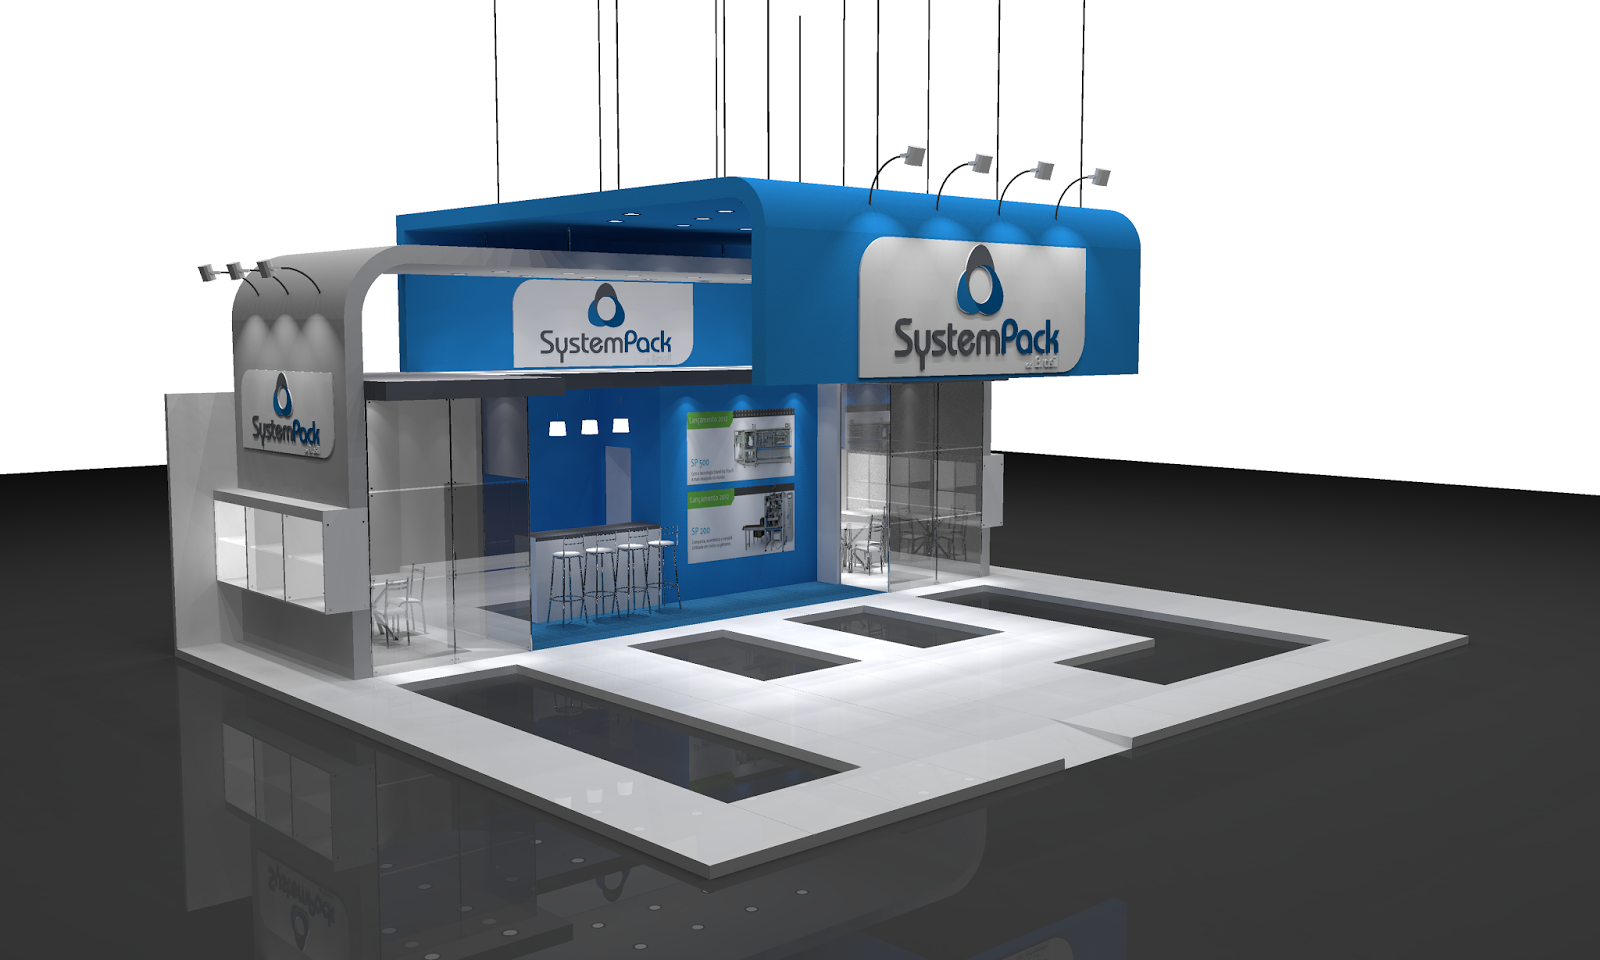 Exhibition Stand Design Sketchup : Vitoria souza produções stand system pack sketchup